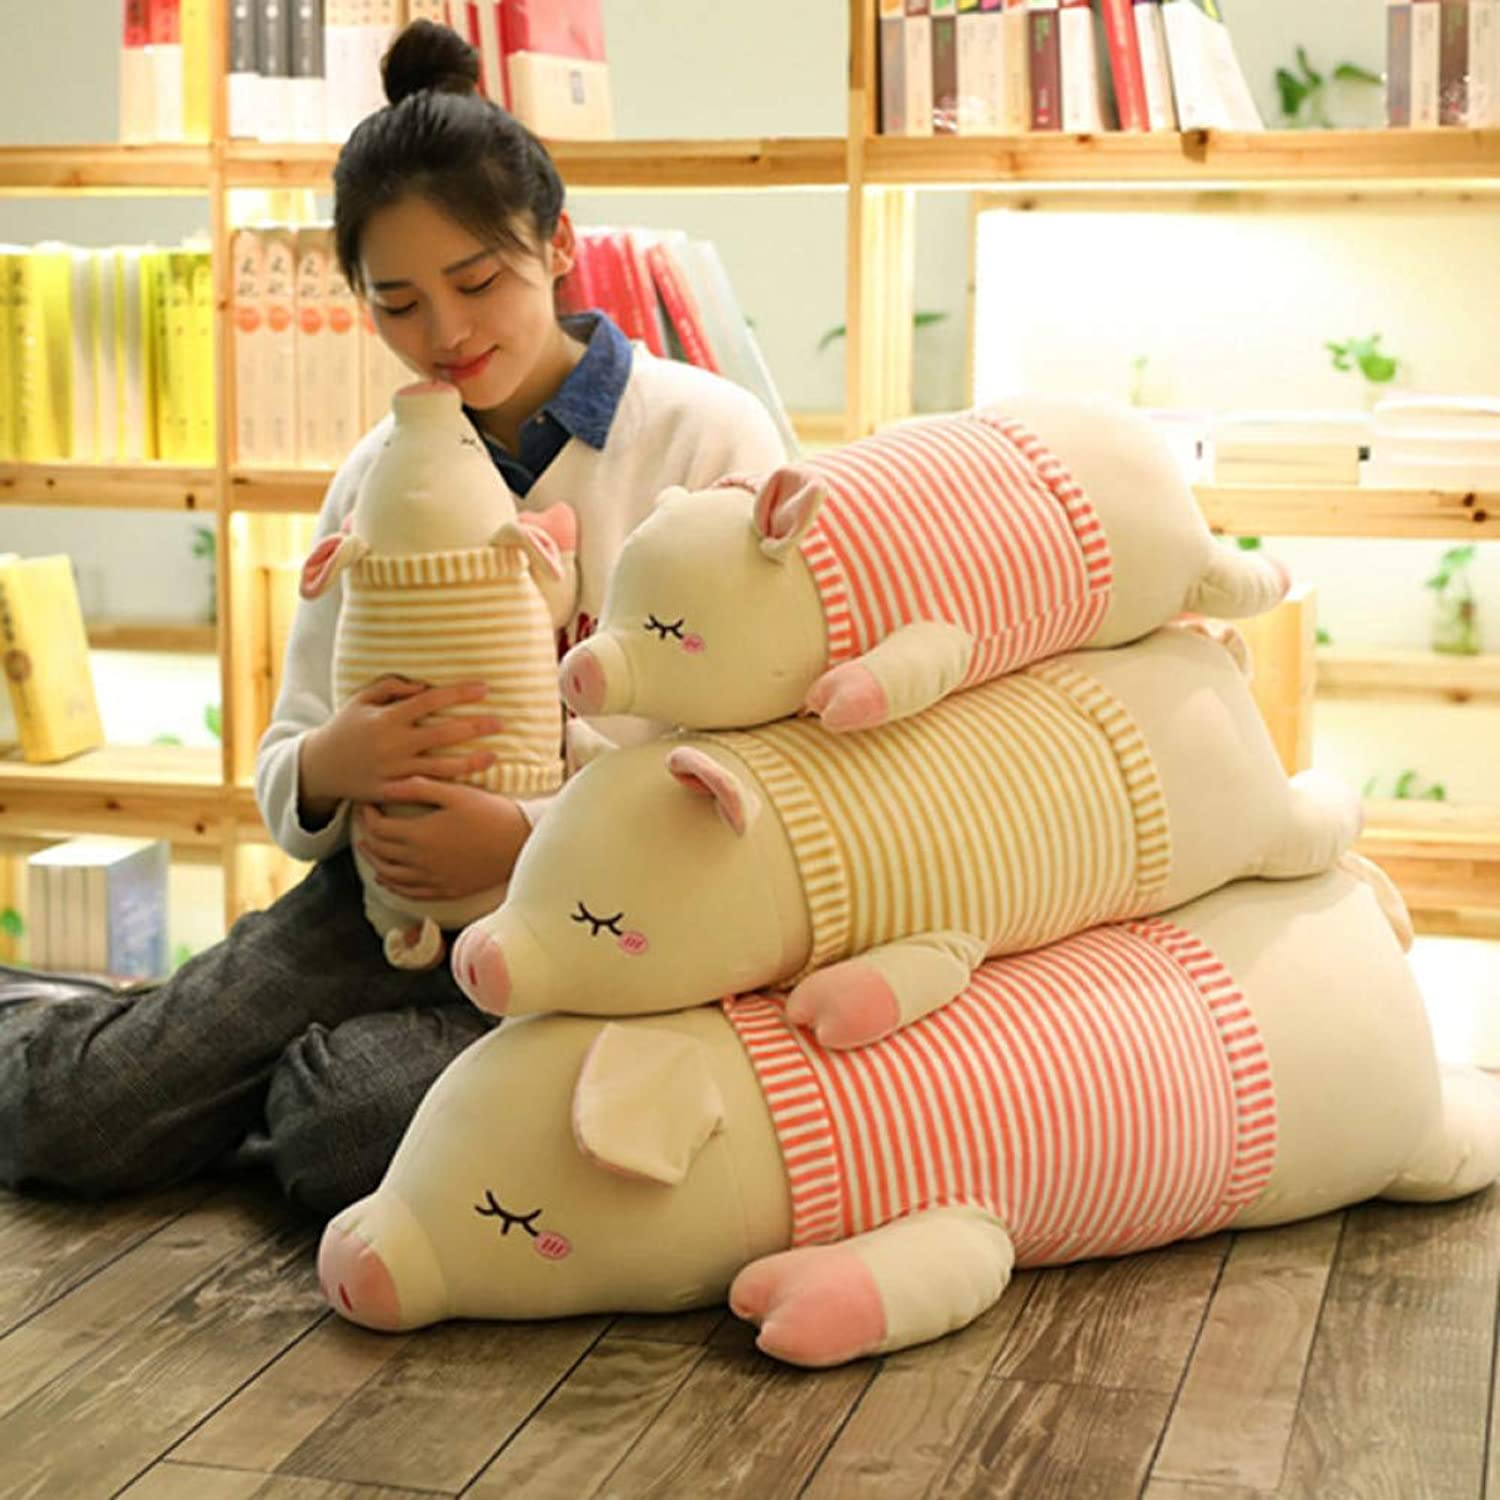 LAIBAERDAN Soft Striped Pigtail Plush Toy Pig Doll Doll Sleeping Pillow Pig Doll Birthday Gift